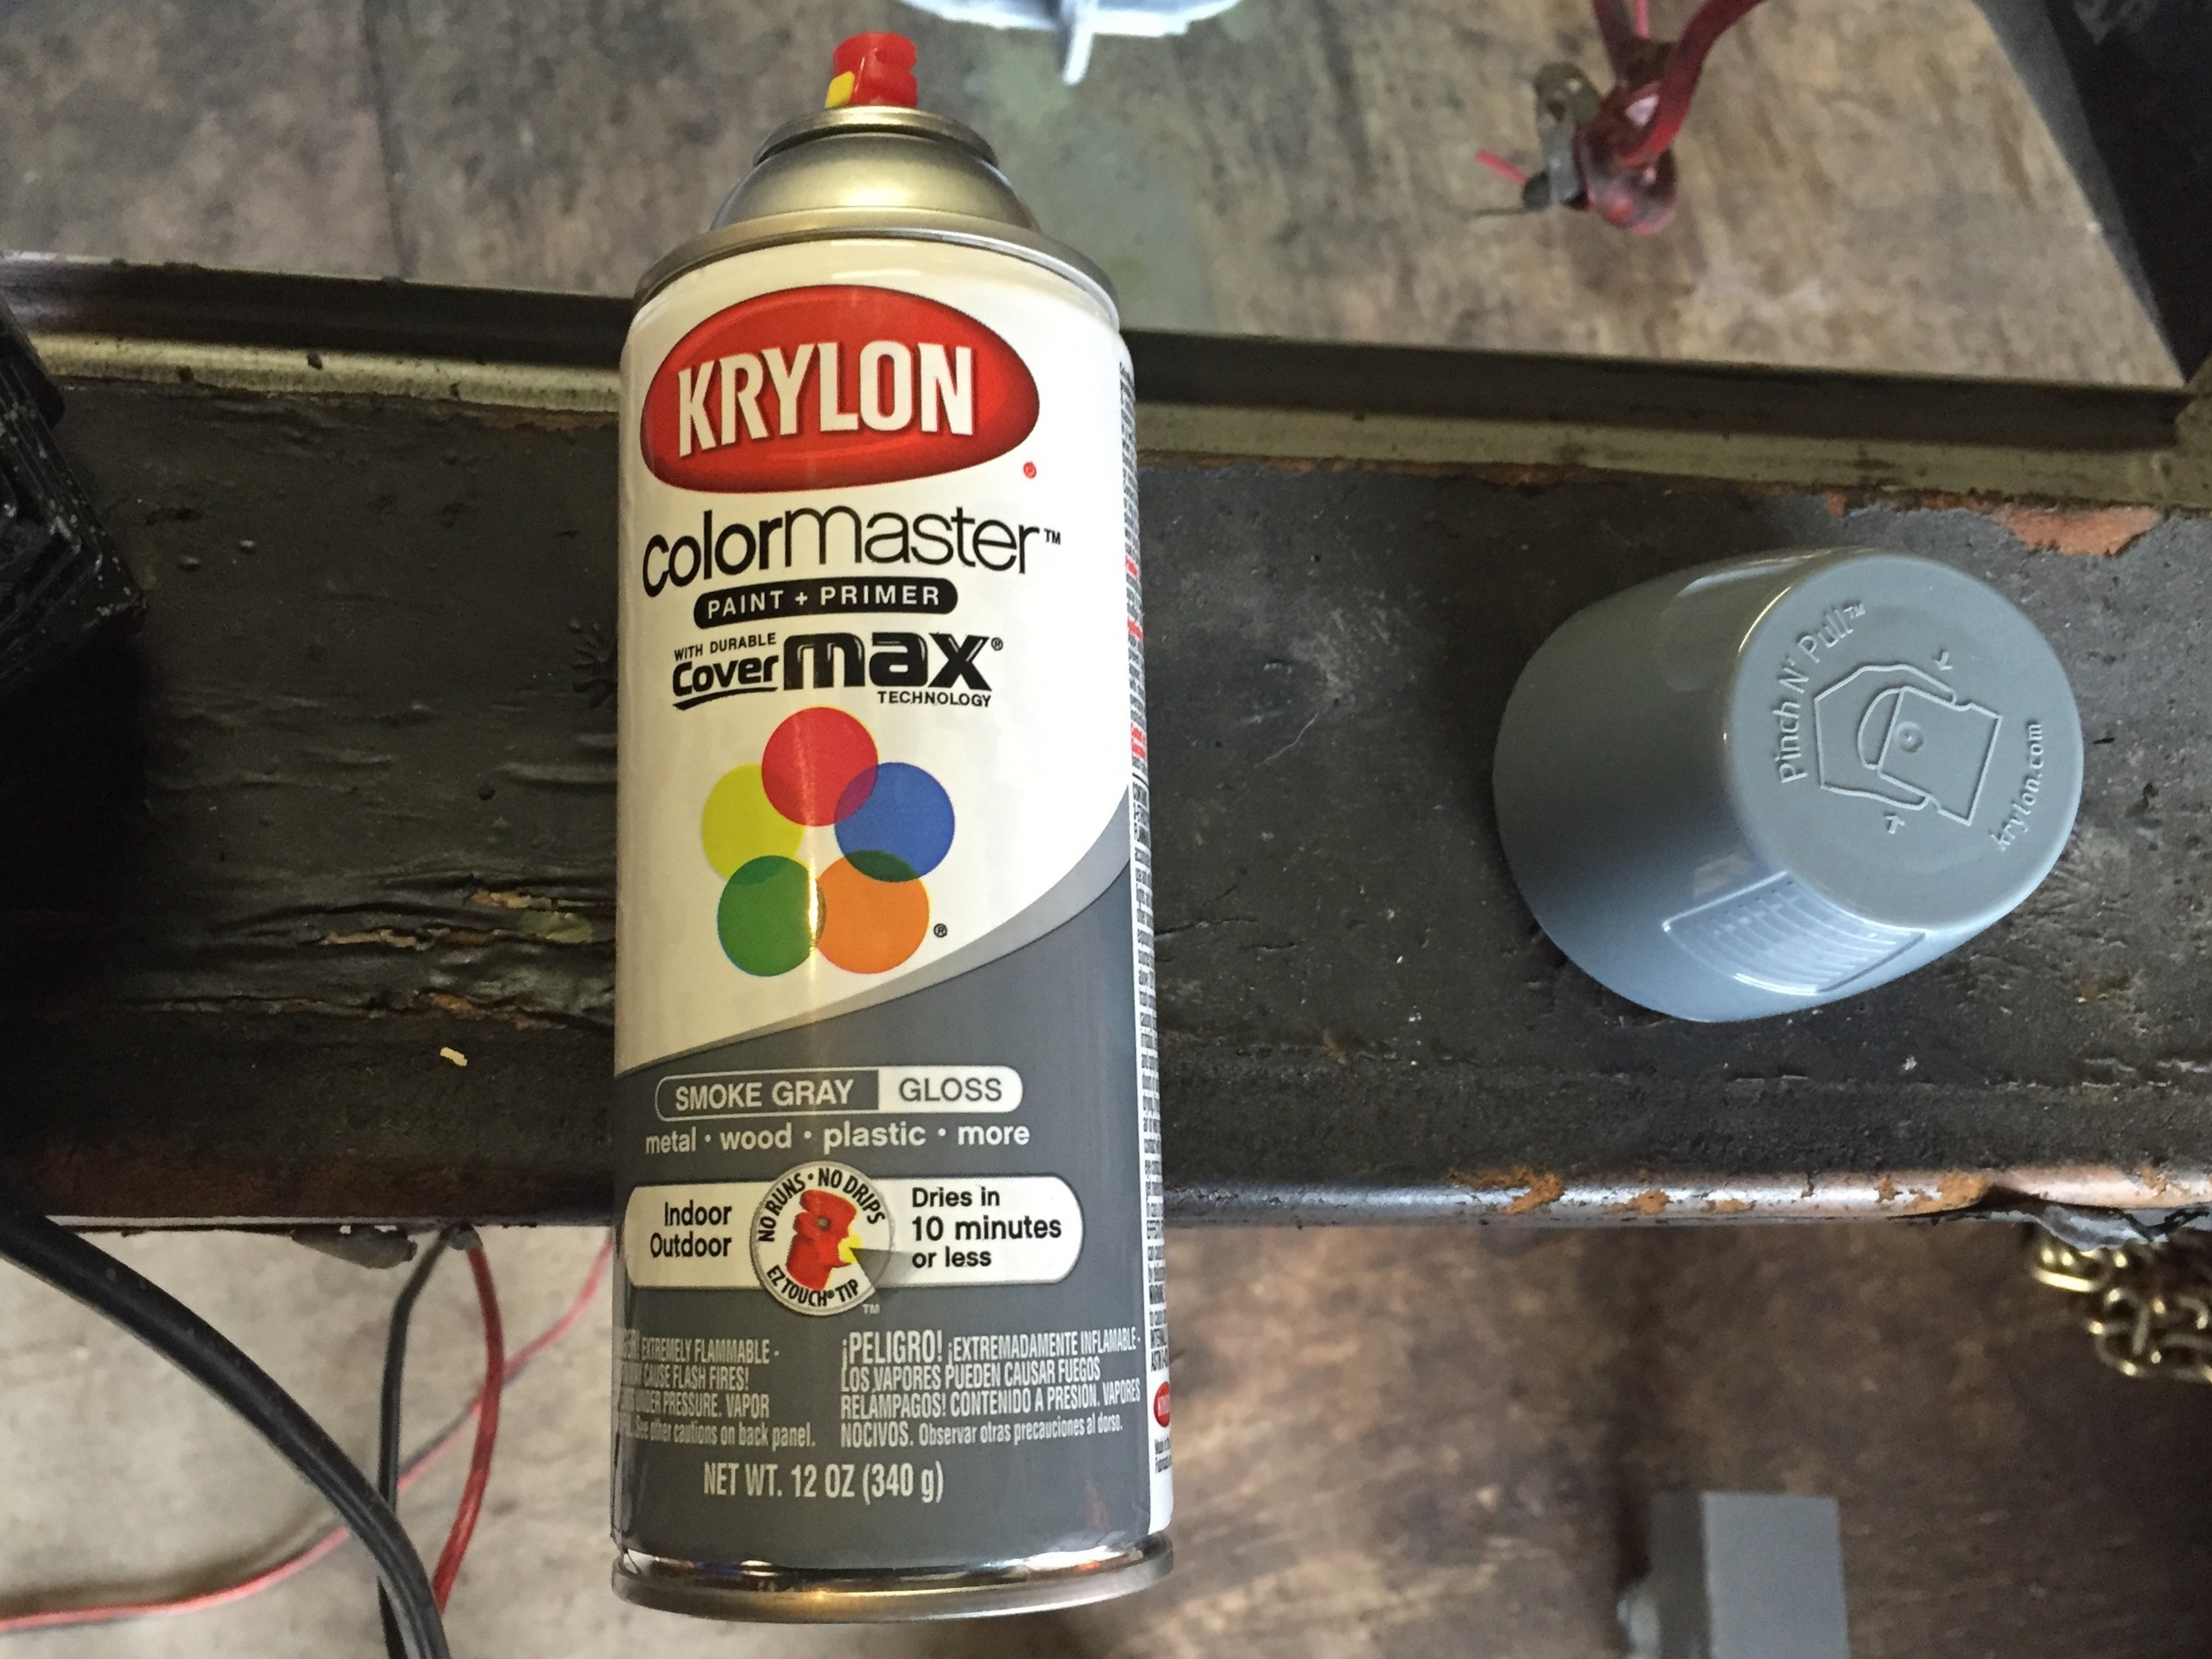 A can of Krylon Smoke Gray, which matches the original epoxy color.